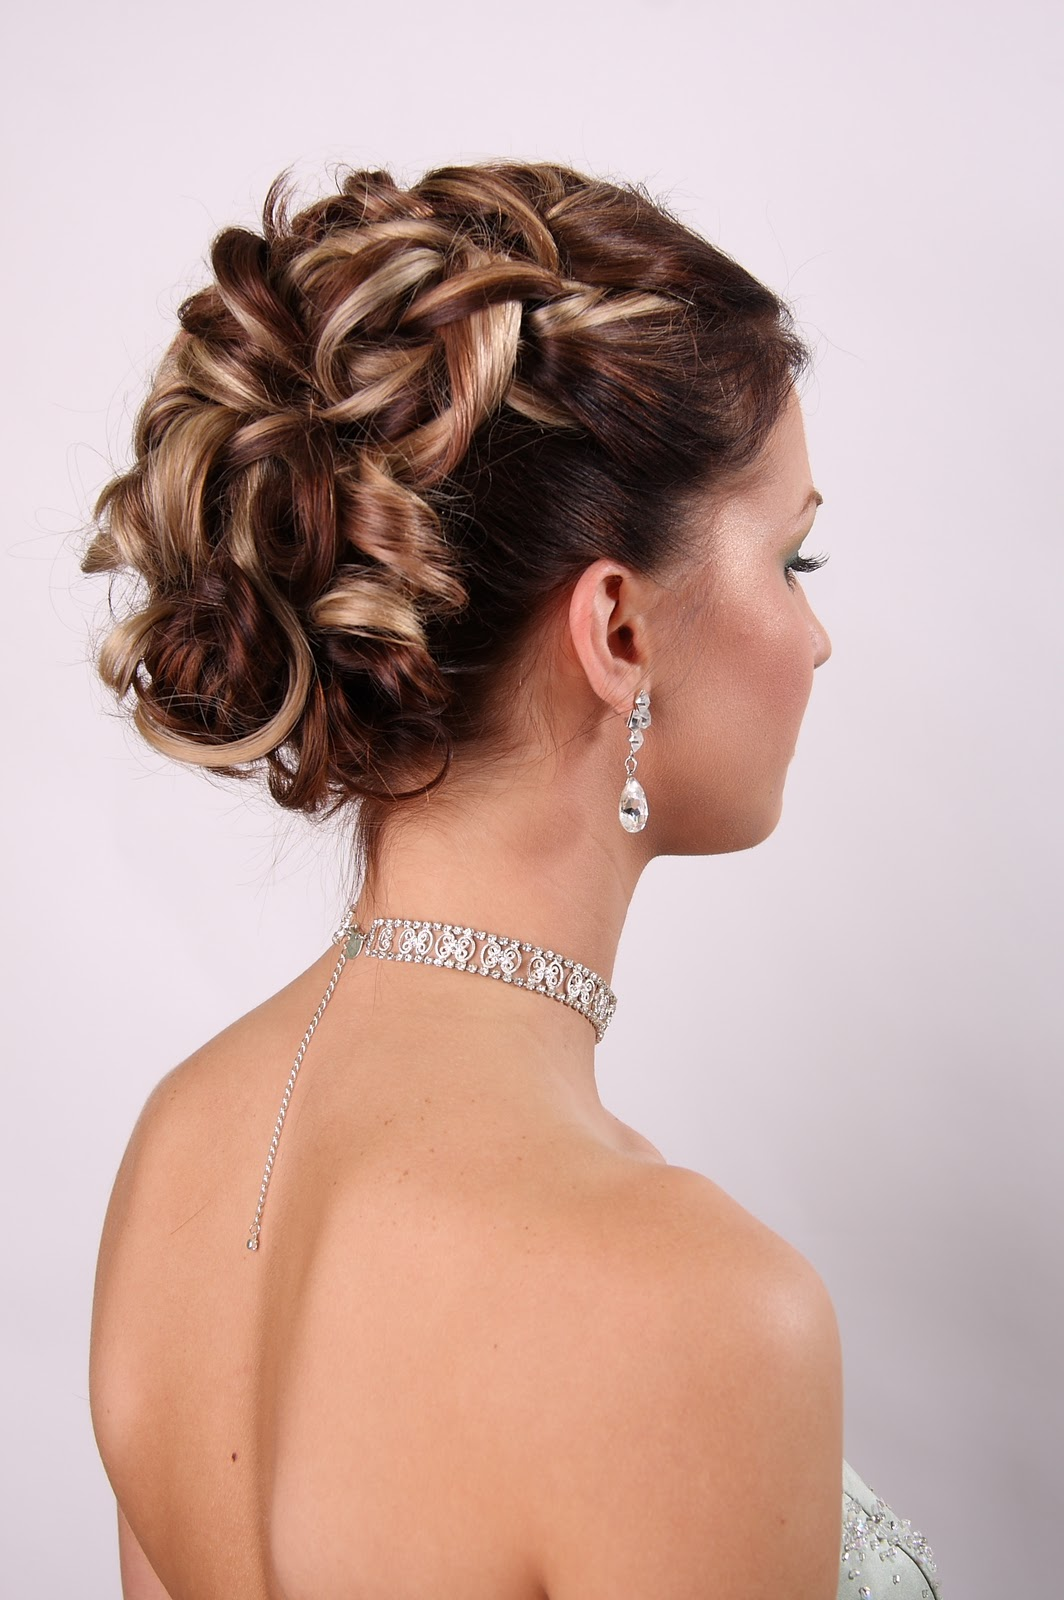 Wedding Hair And Makeup Ct Jonathan Edwards Winery: 50 Hairstyles For Weddings To Look Amazingly Special